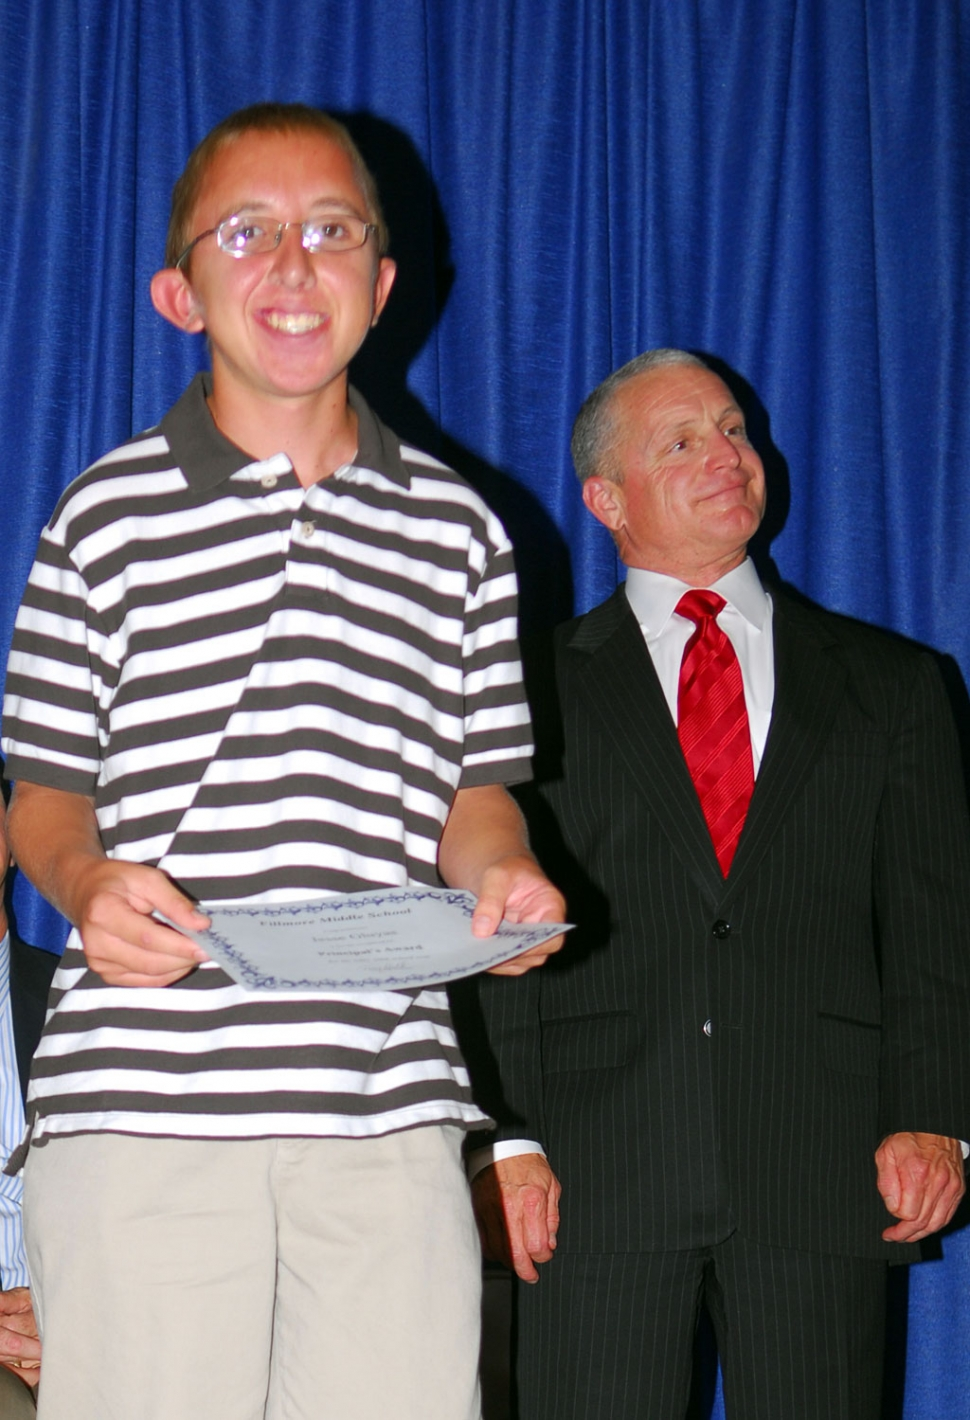 Jesse Gluyas received the Principals Award at Fillmore Middle School.